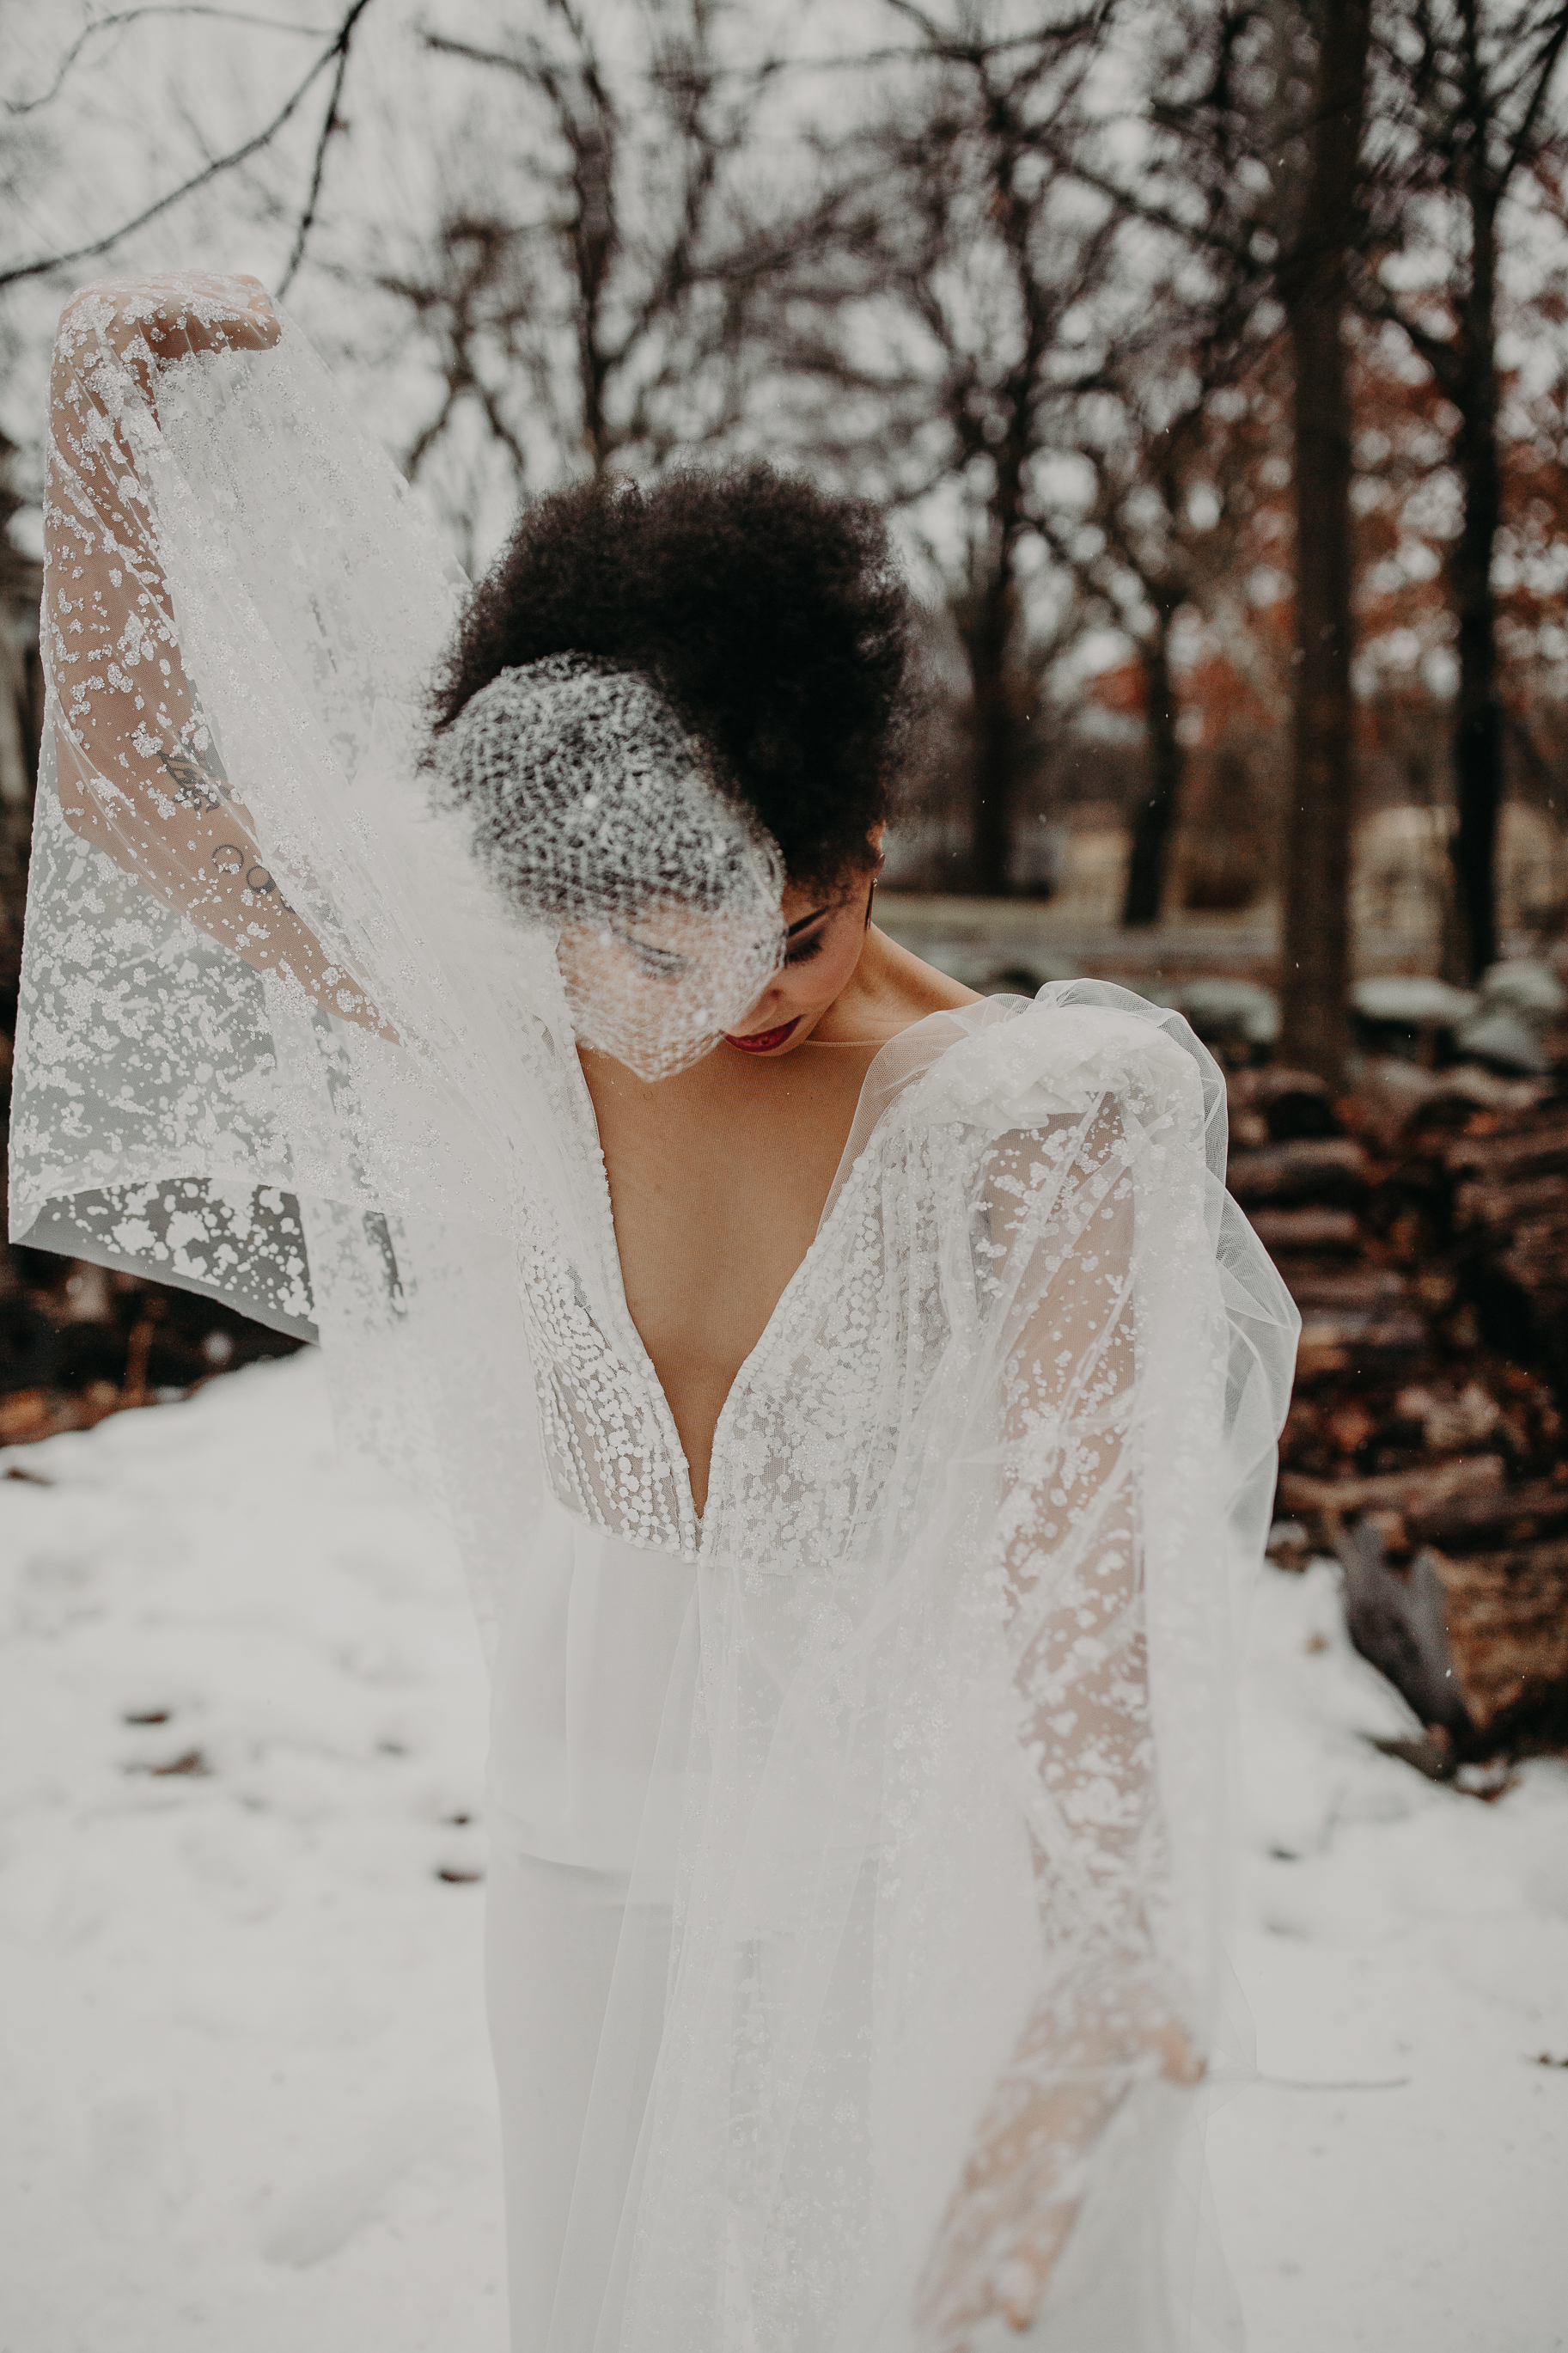 Dancing at her B&B winter fashionable elopement in Hudson, New York - Pearl Weddings & Events